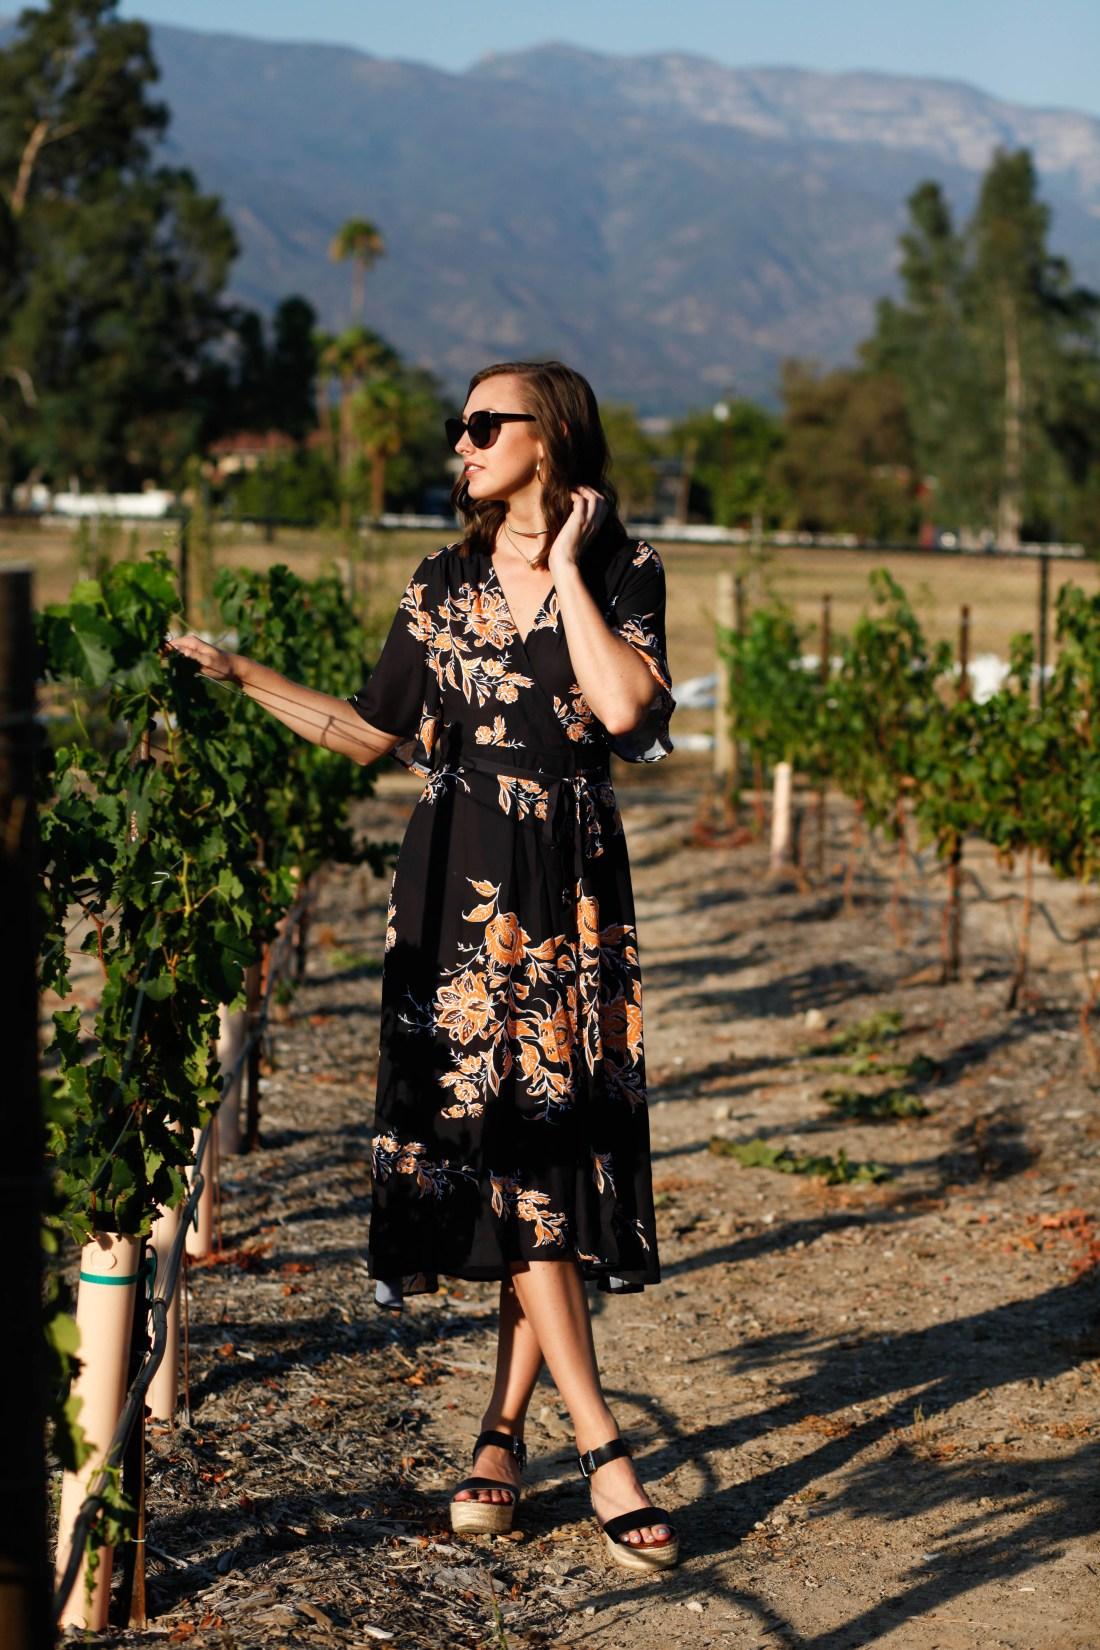 Topa Mountain Winery vineyard wrap dress summer outfit